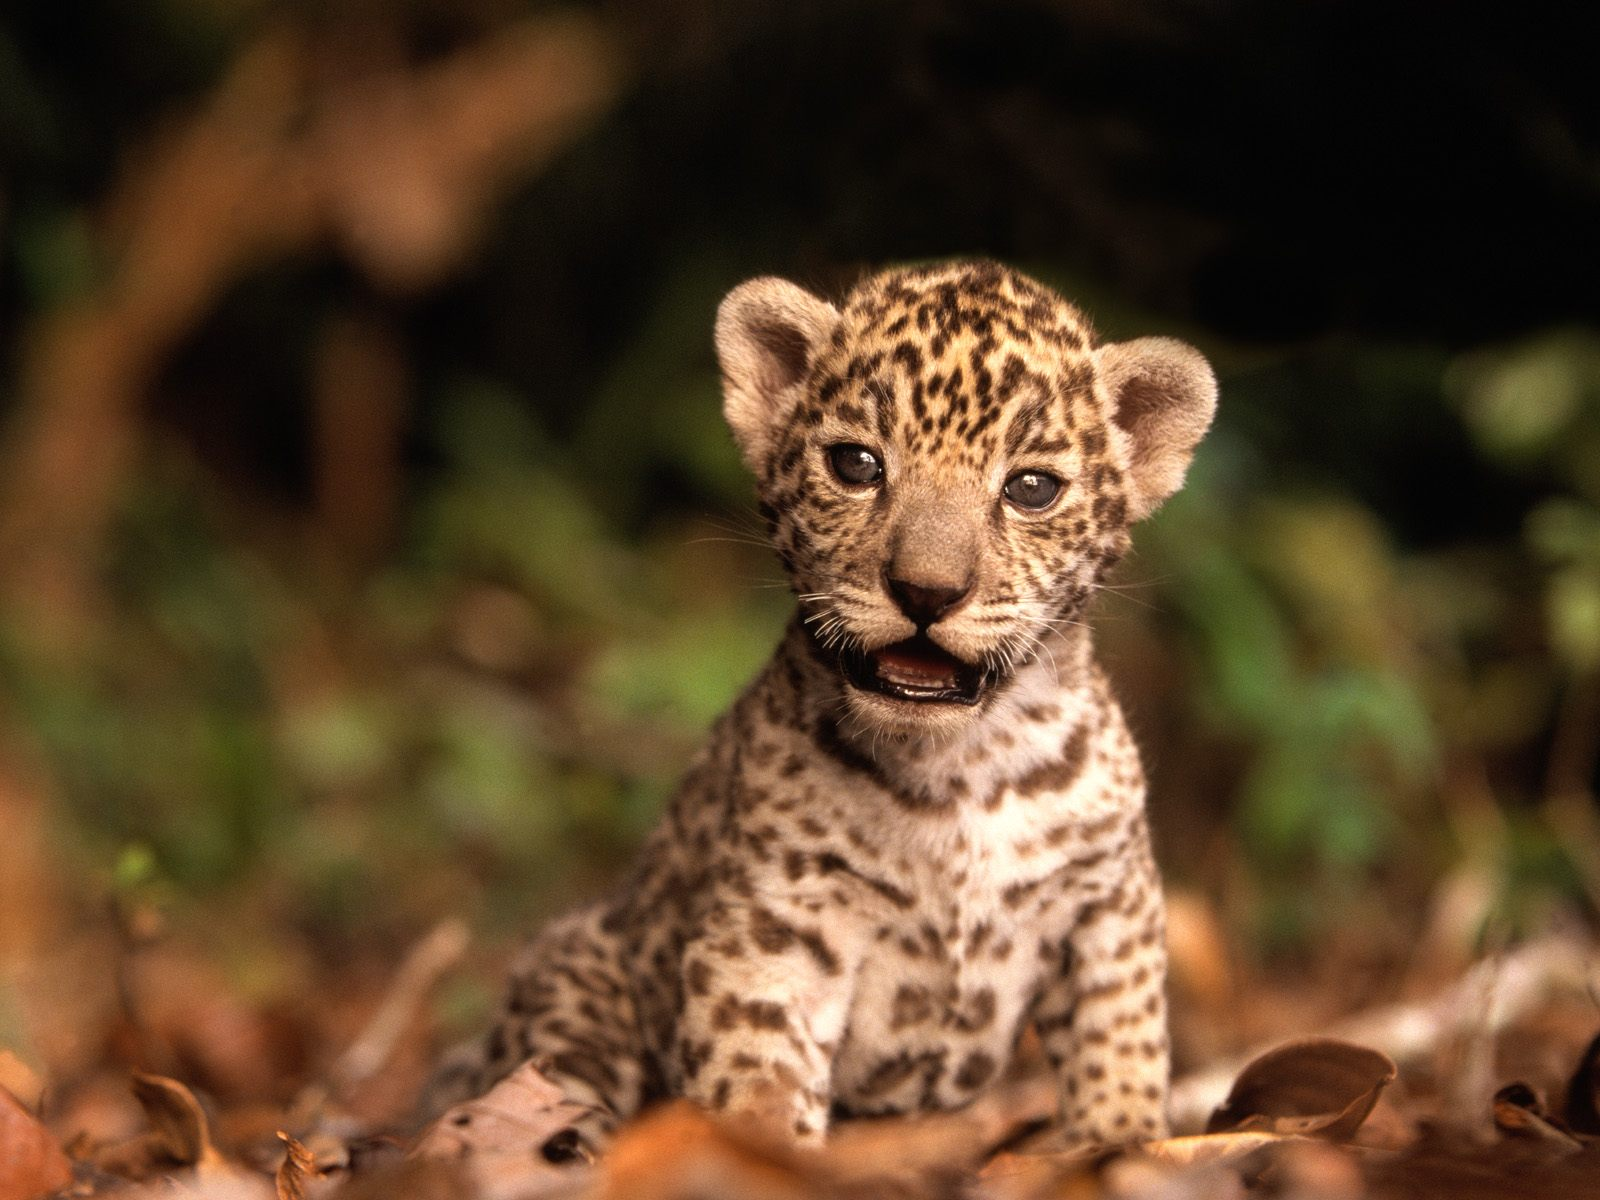 Cute Animals Wallpapers 10132 Hd Wallpapers in Animals   Imagescicom 1600x1200